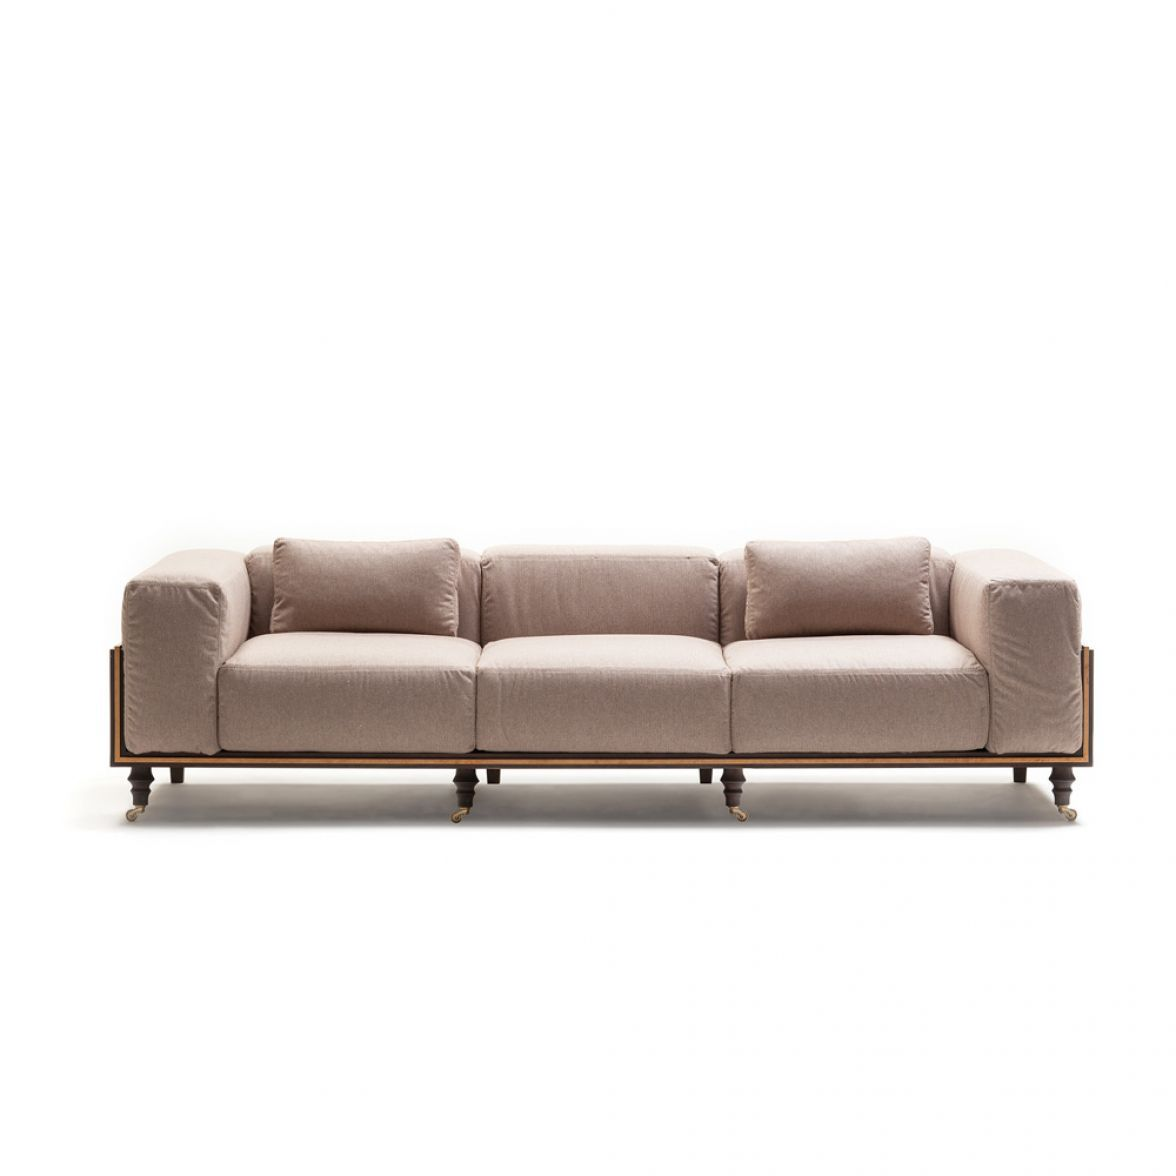 Bassorilievi sofa фото цена